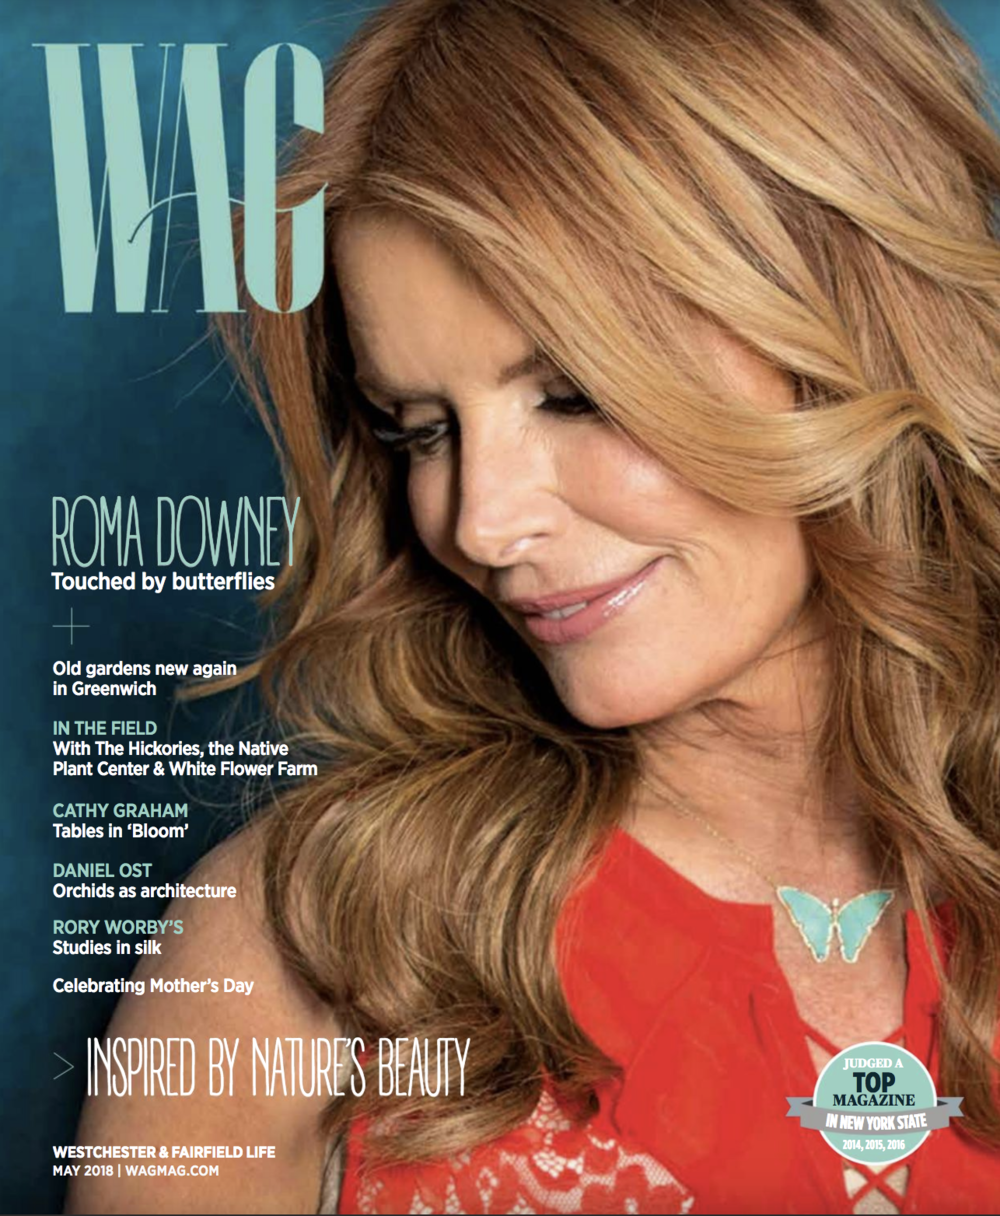 Cafe La Fondita - WAG Magazine - May 2018